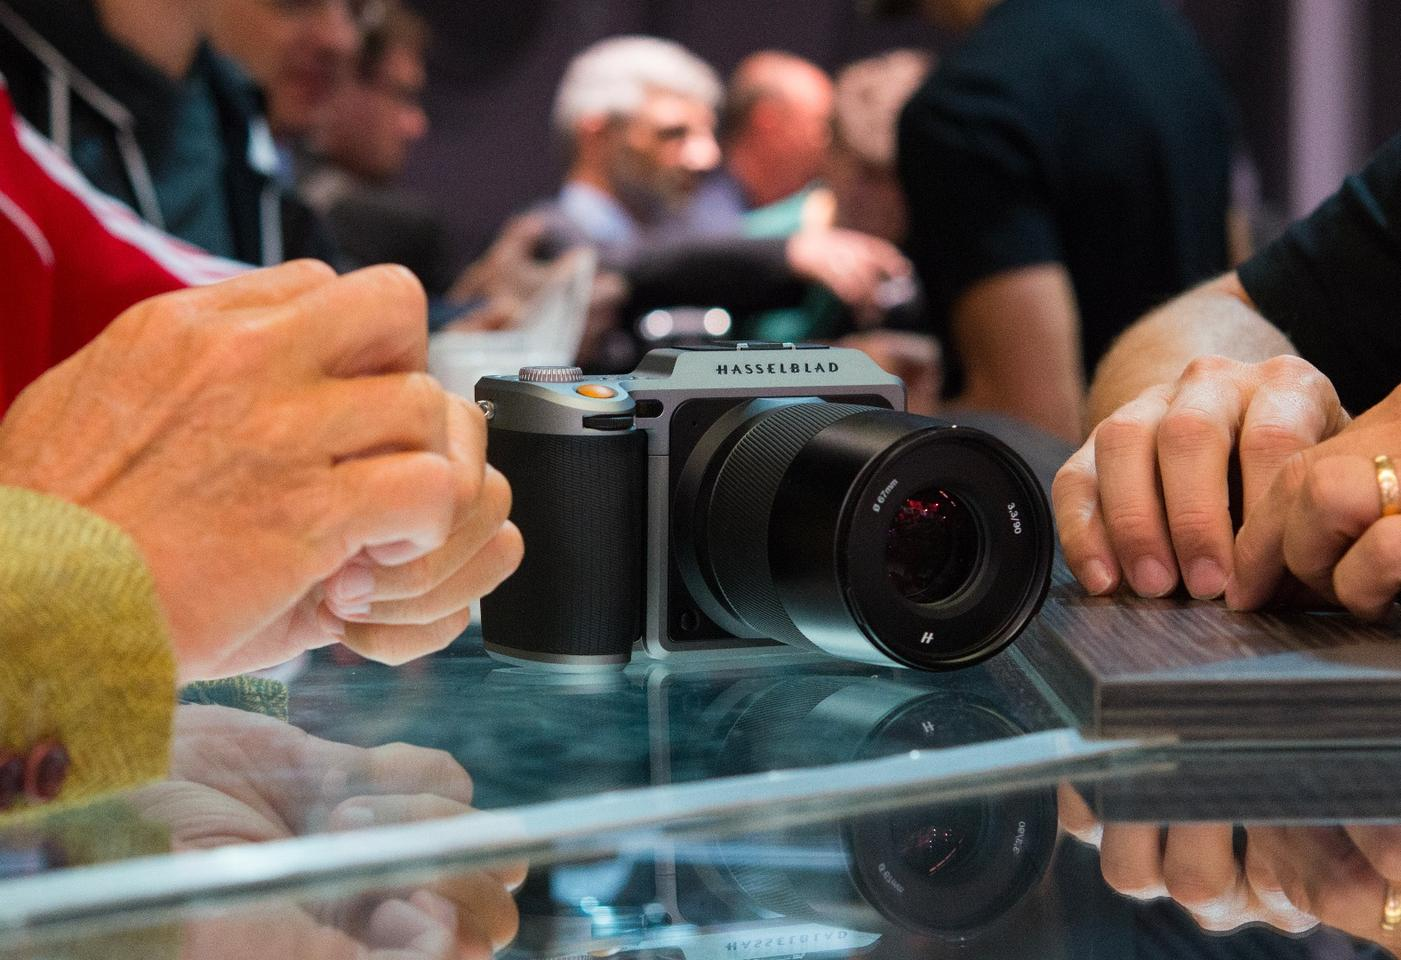 We were eager to get our hands on the Hasselblad X1D mirrorless medium format camera